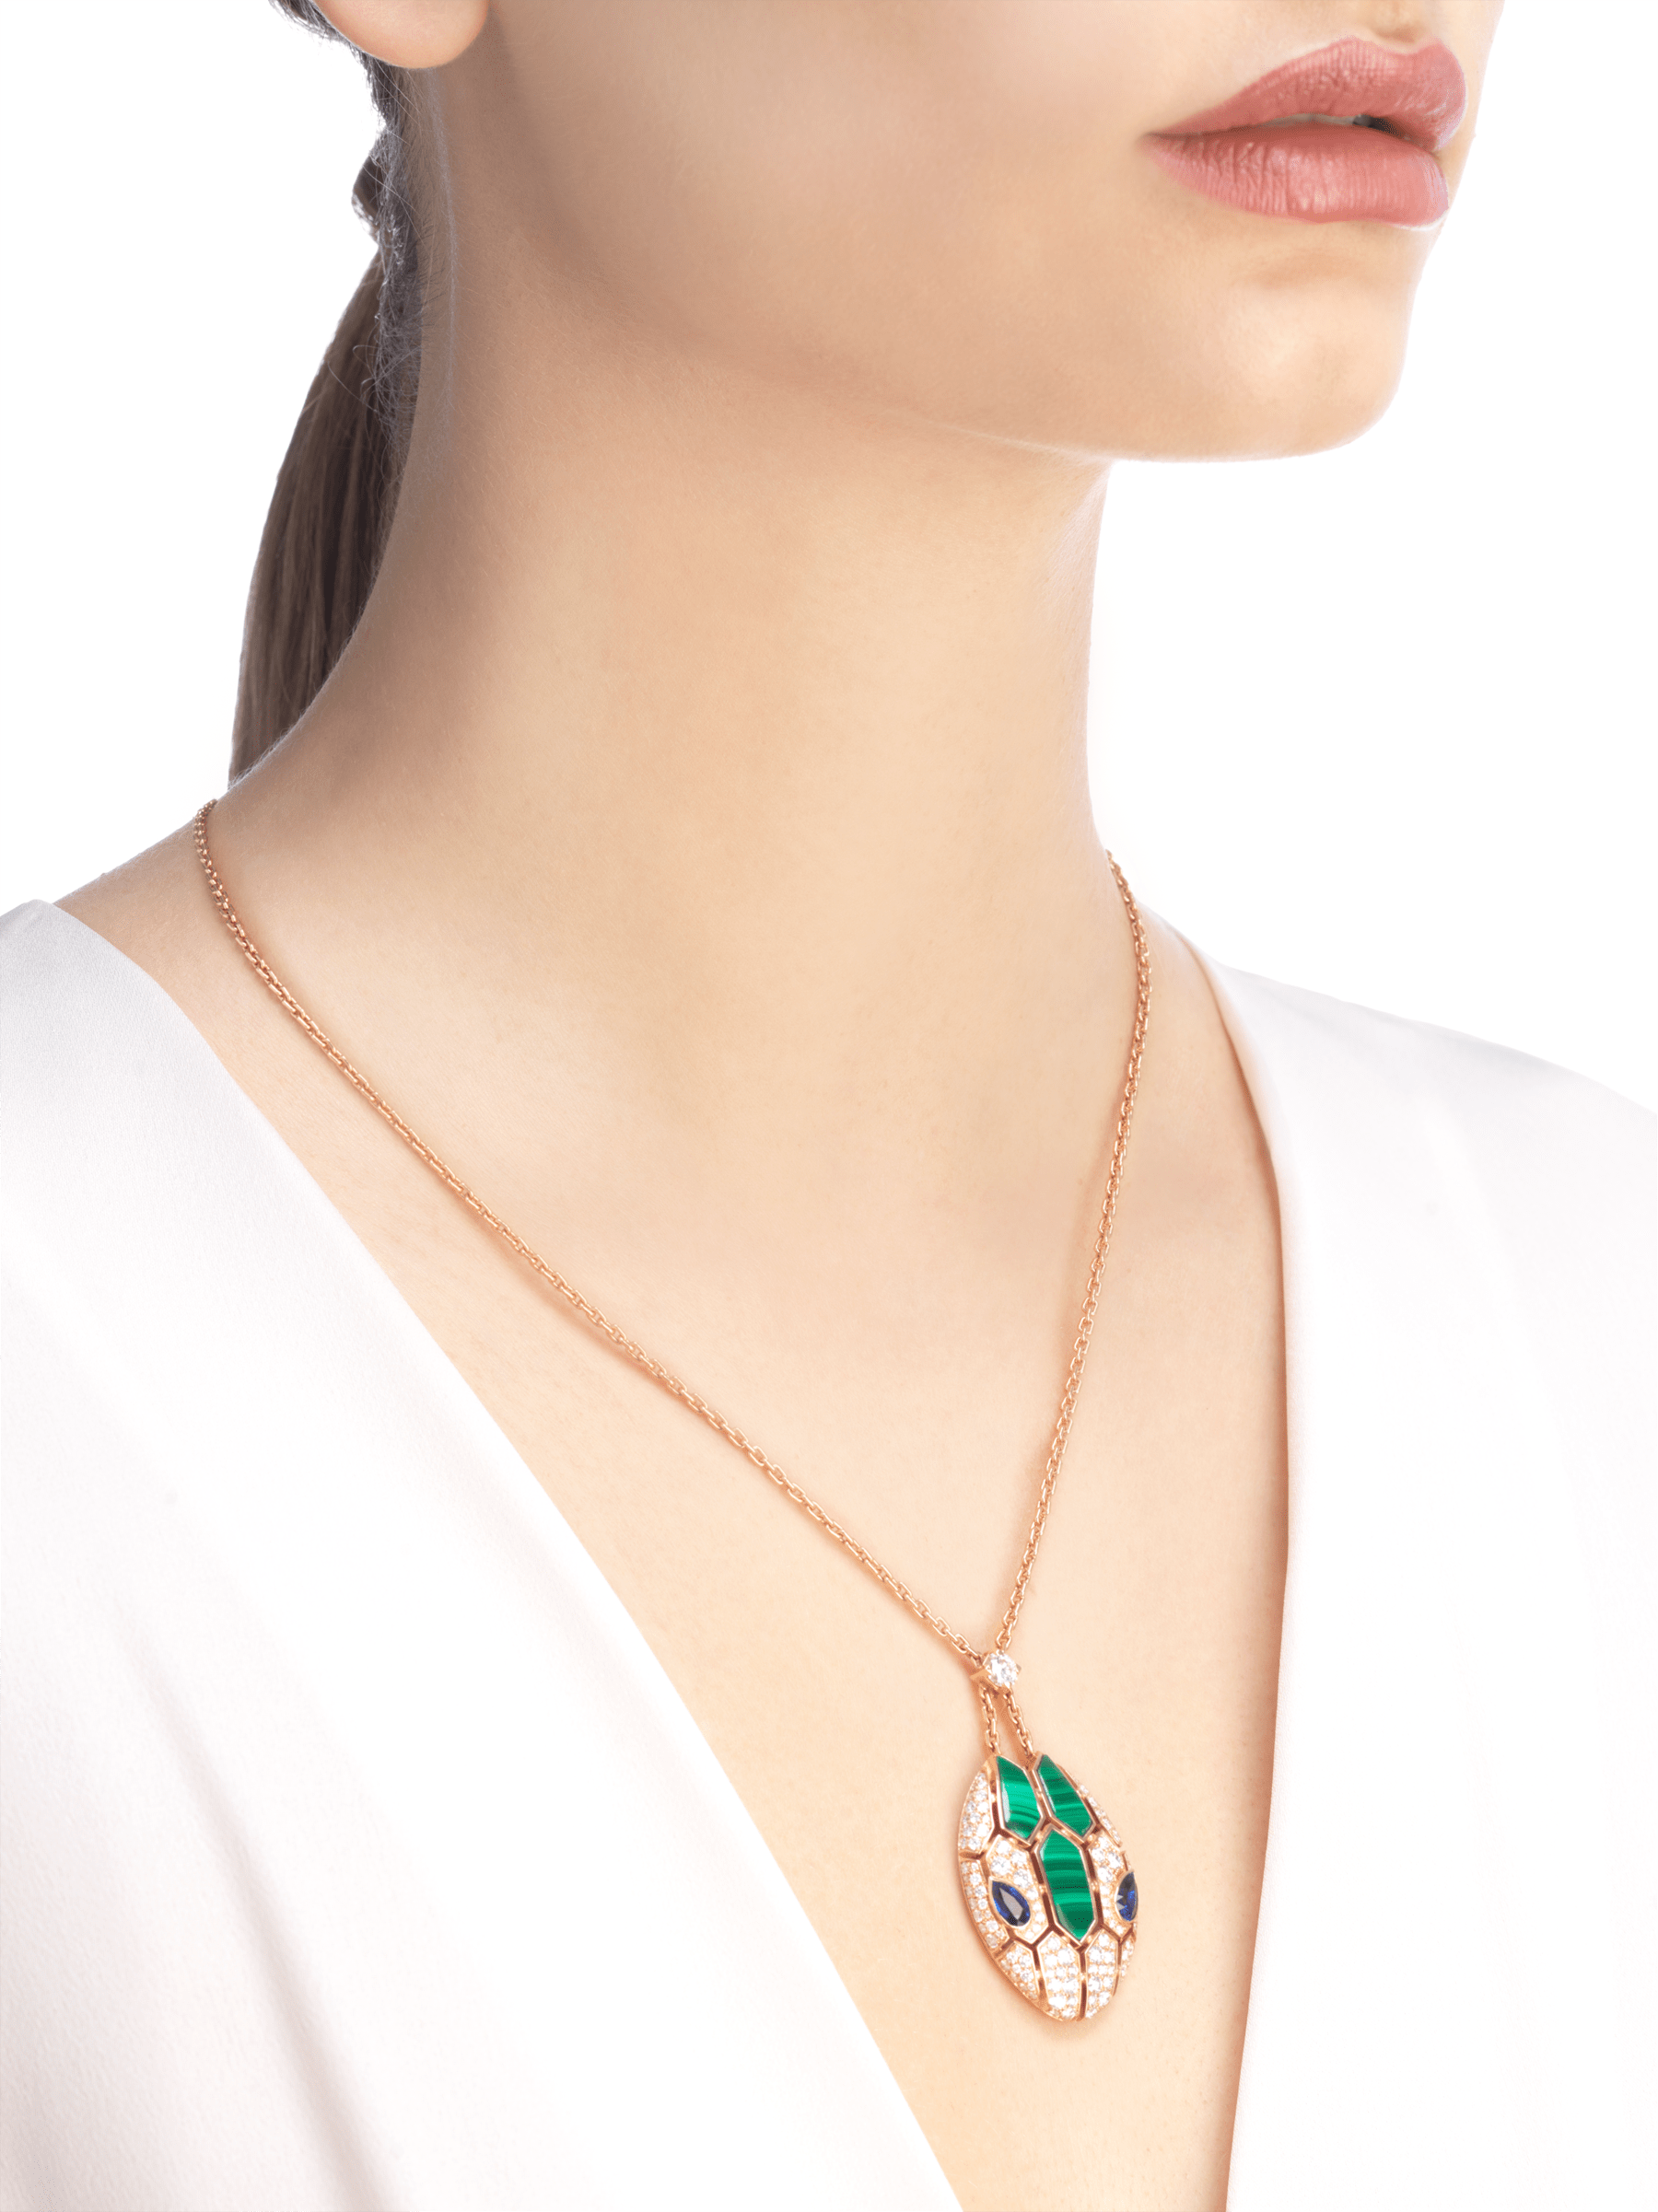 Serpenti 18 kt rose gold necklace set with blue sapphire eyes, malachite elements and pavé diamonds on the pendant. 356782 image 2